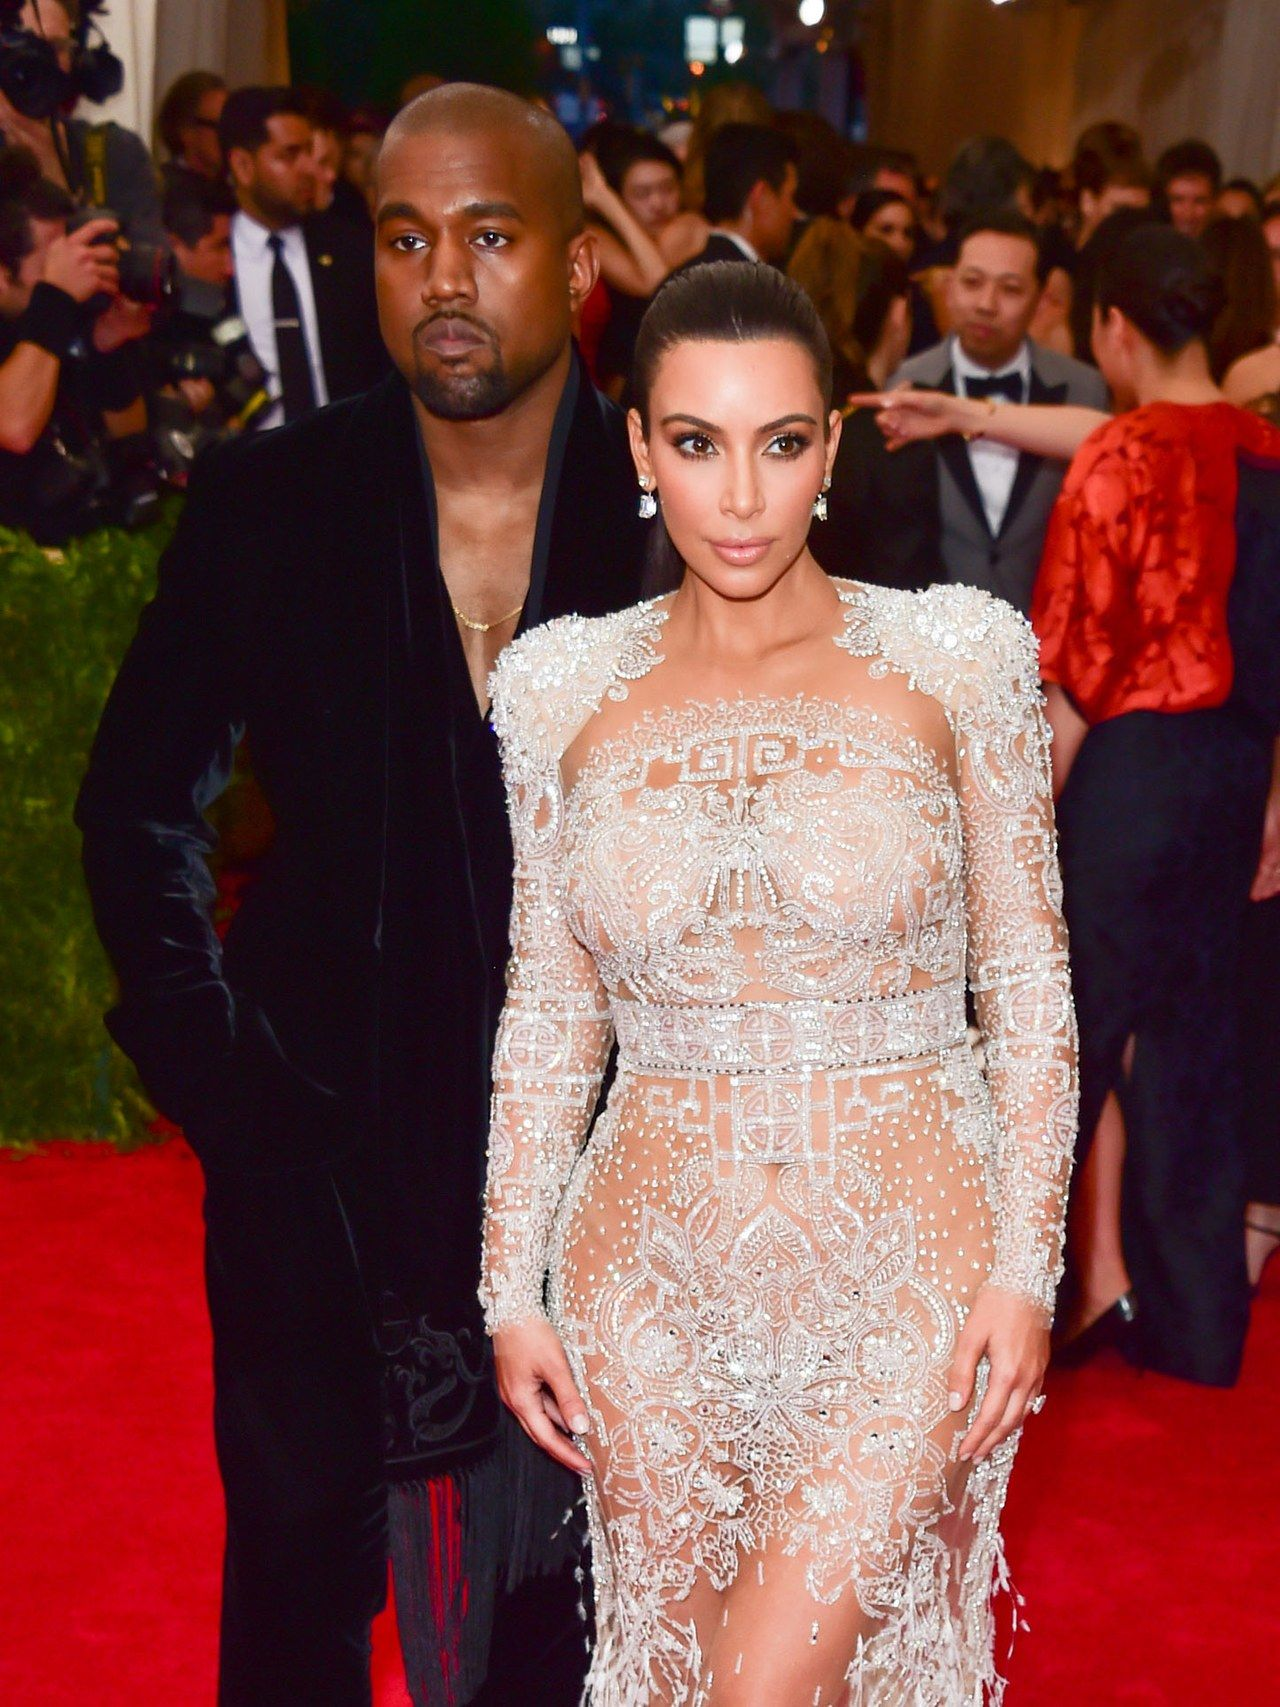 The 25 Best Met Gala Beauty Looks Of All Time Met Gala Met Gala Looks Kim And Kanye